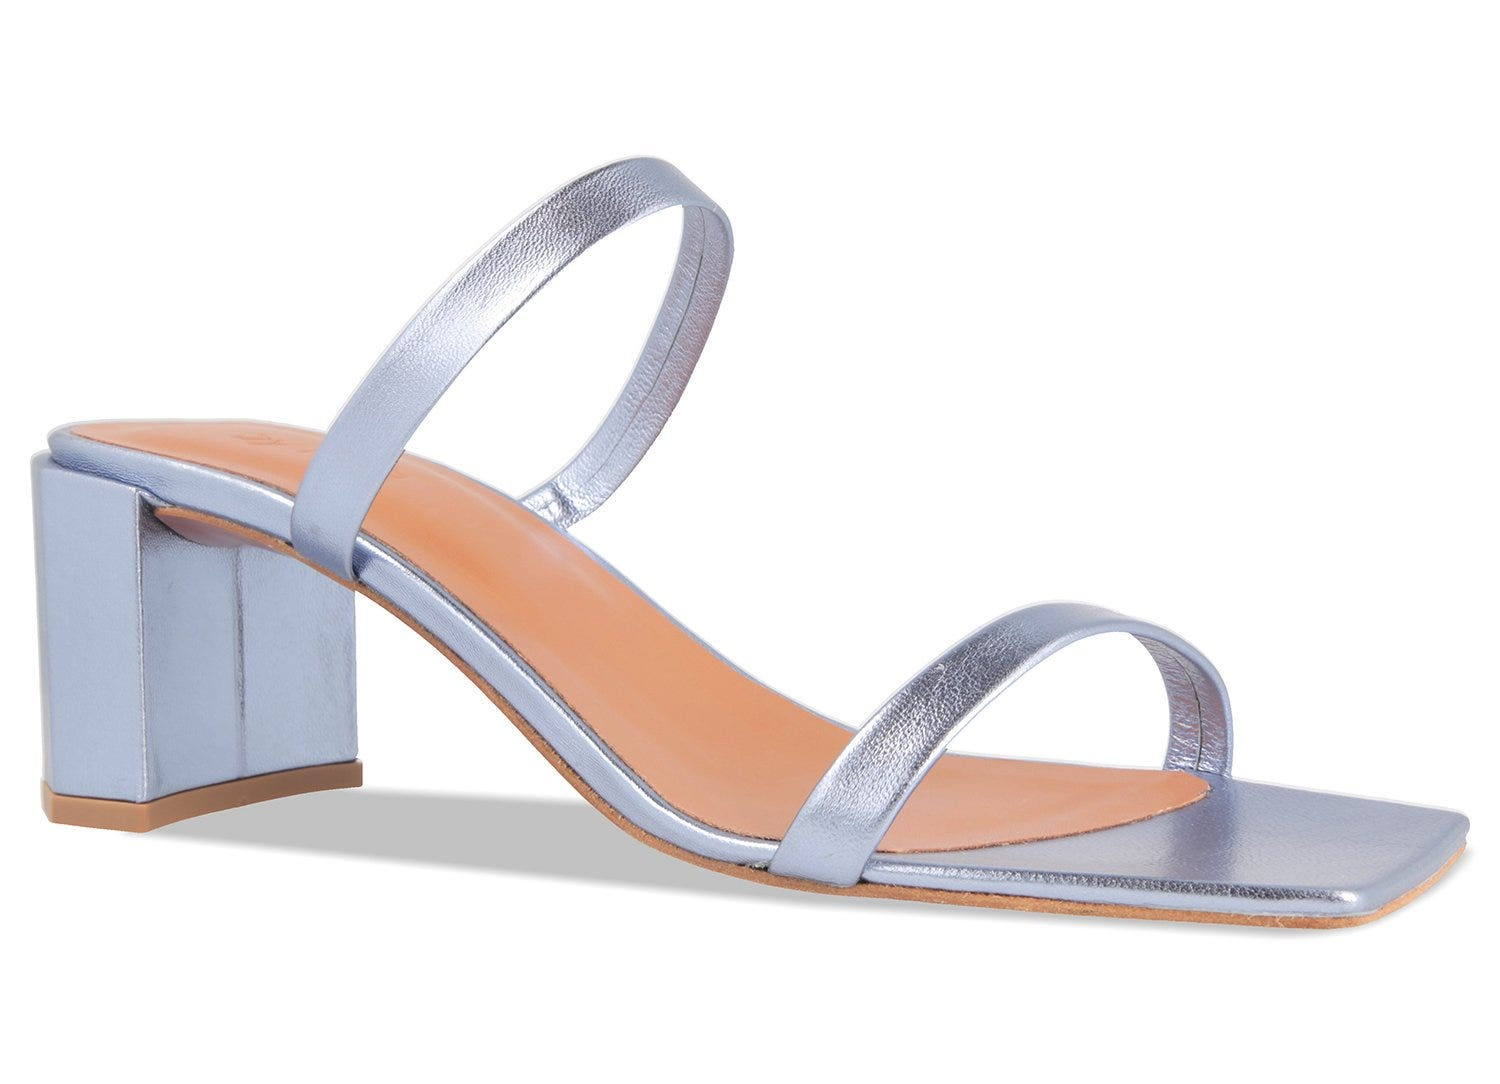 e578adbd6dcb Summer Shoes For Women - Stylish Sandals For 2018